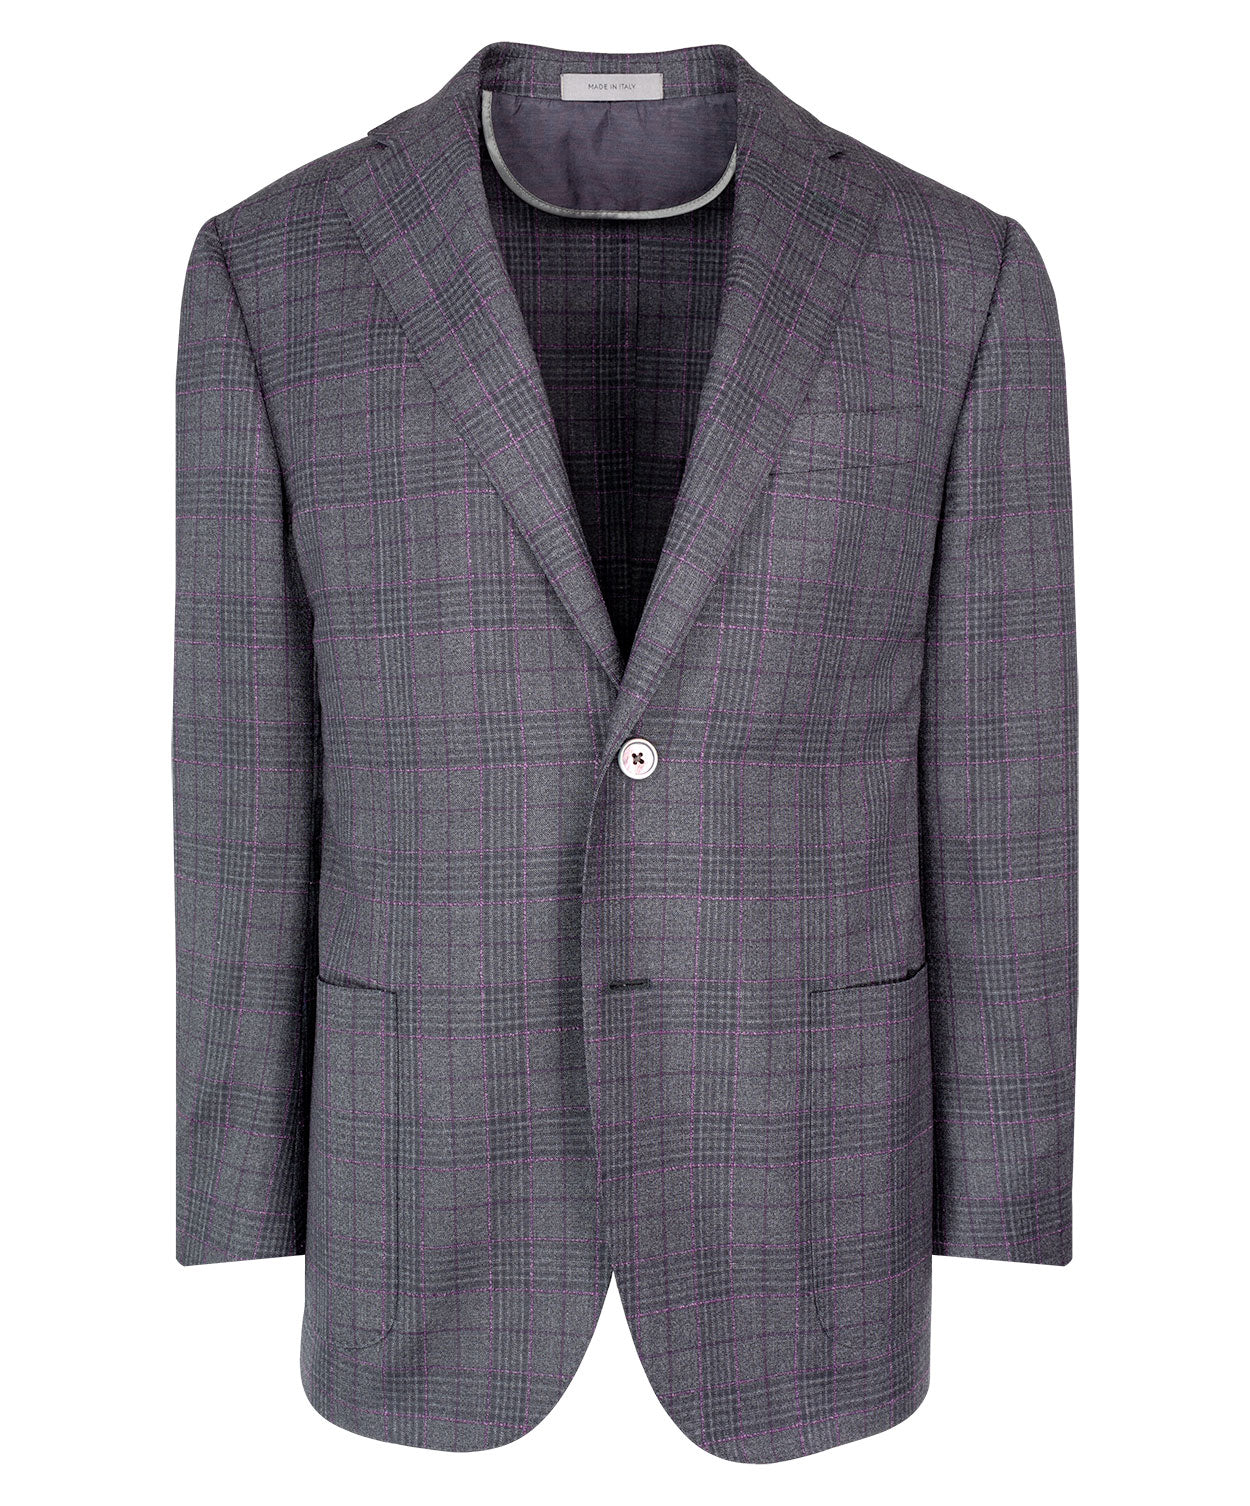 Leader Grey/Rose 3D Optic Sophisticated Glen Check Sartorial Jacket